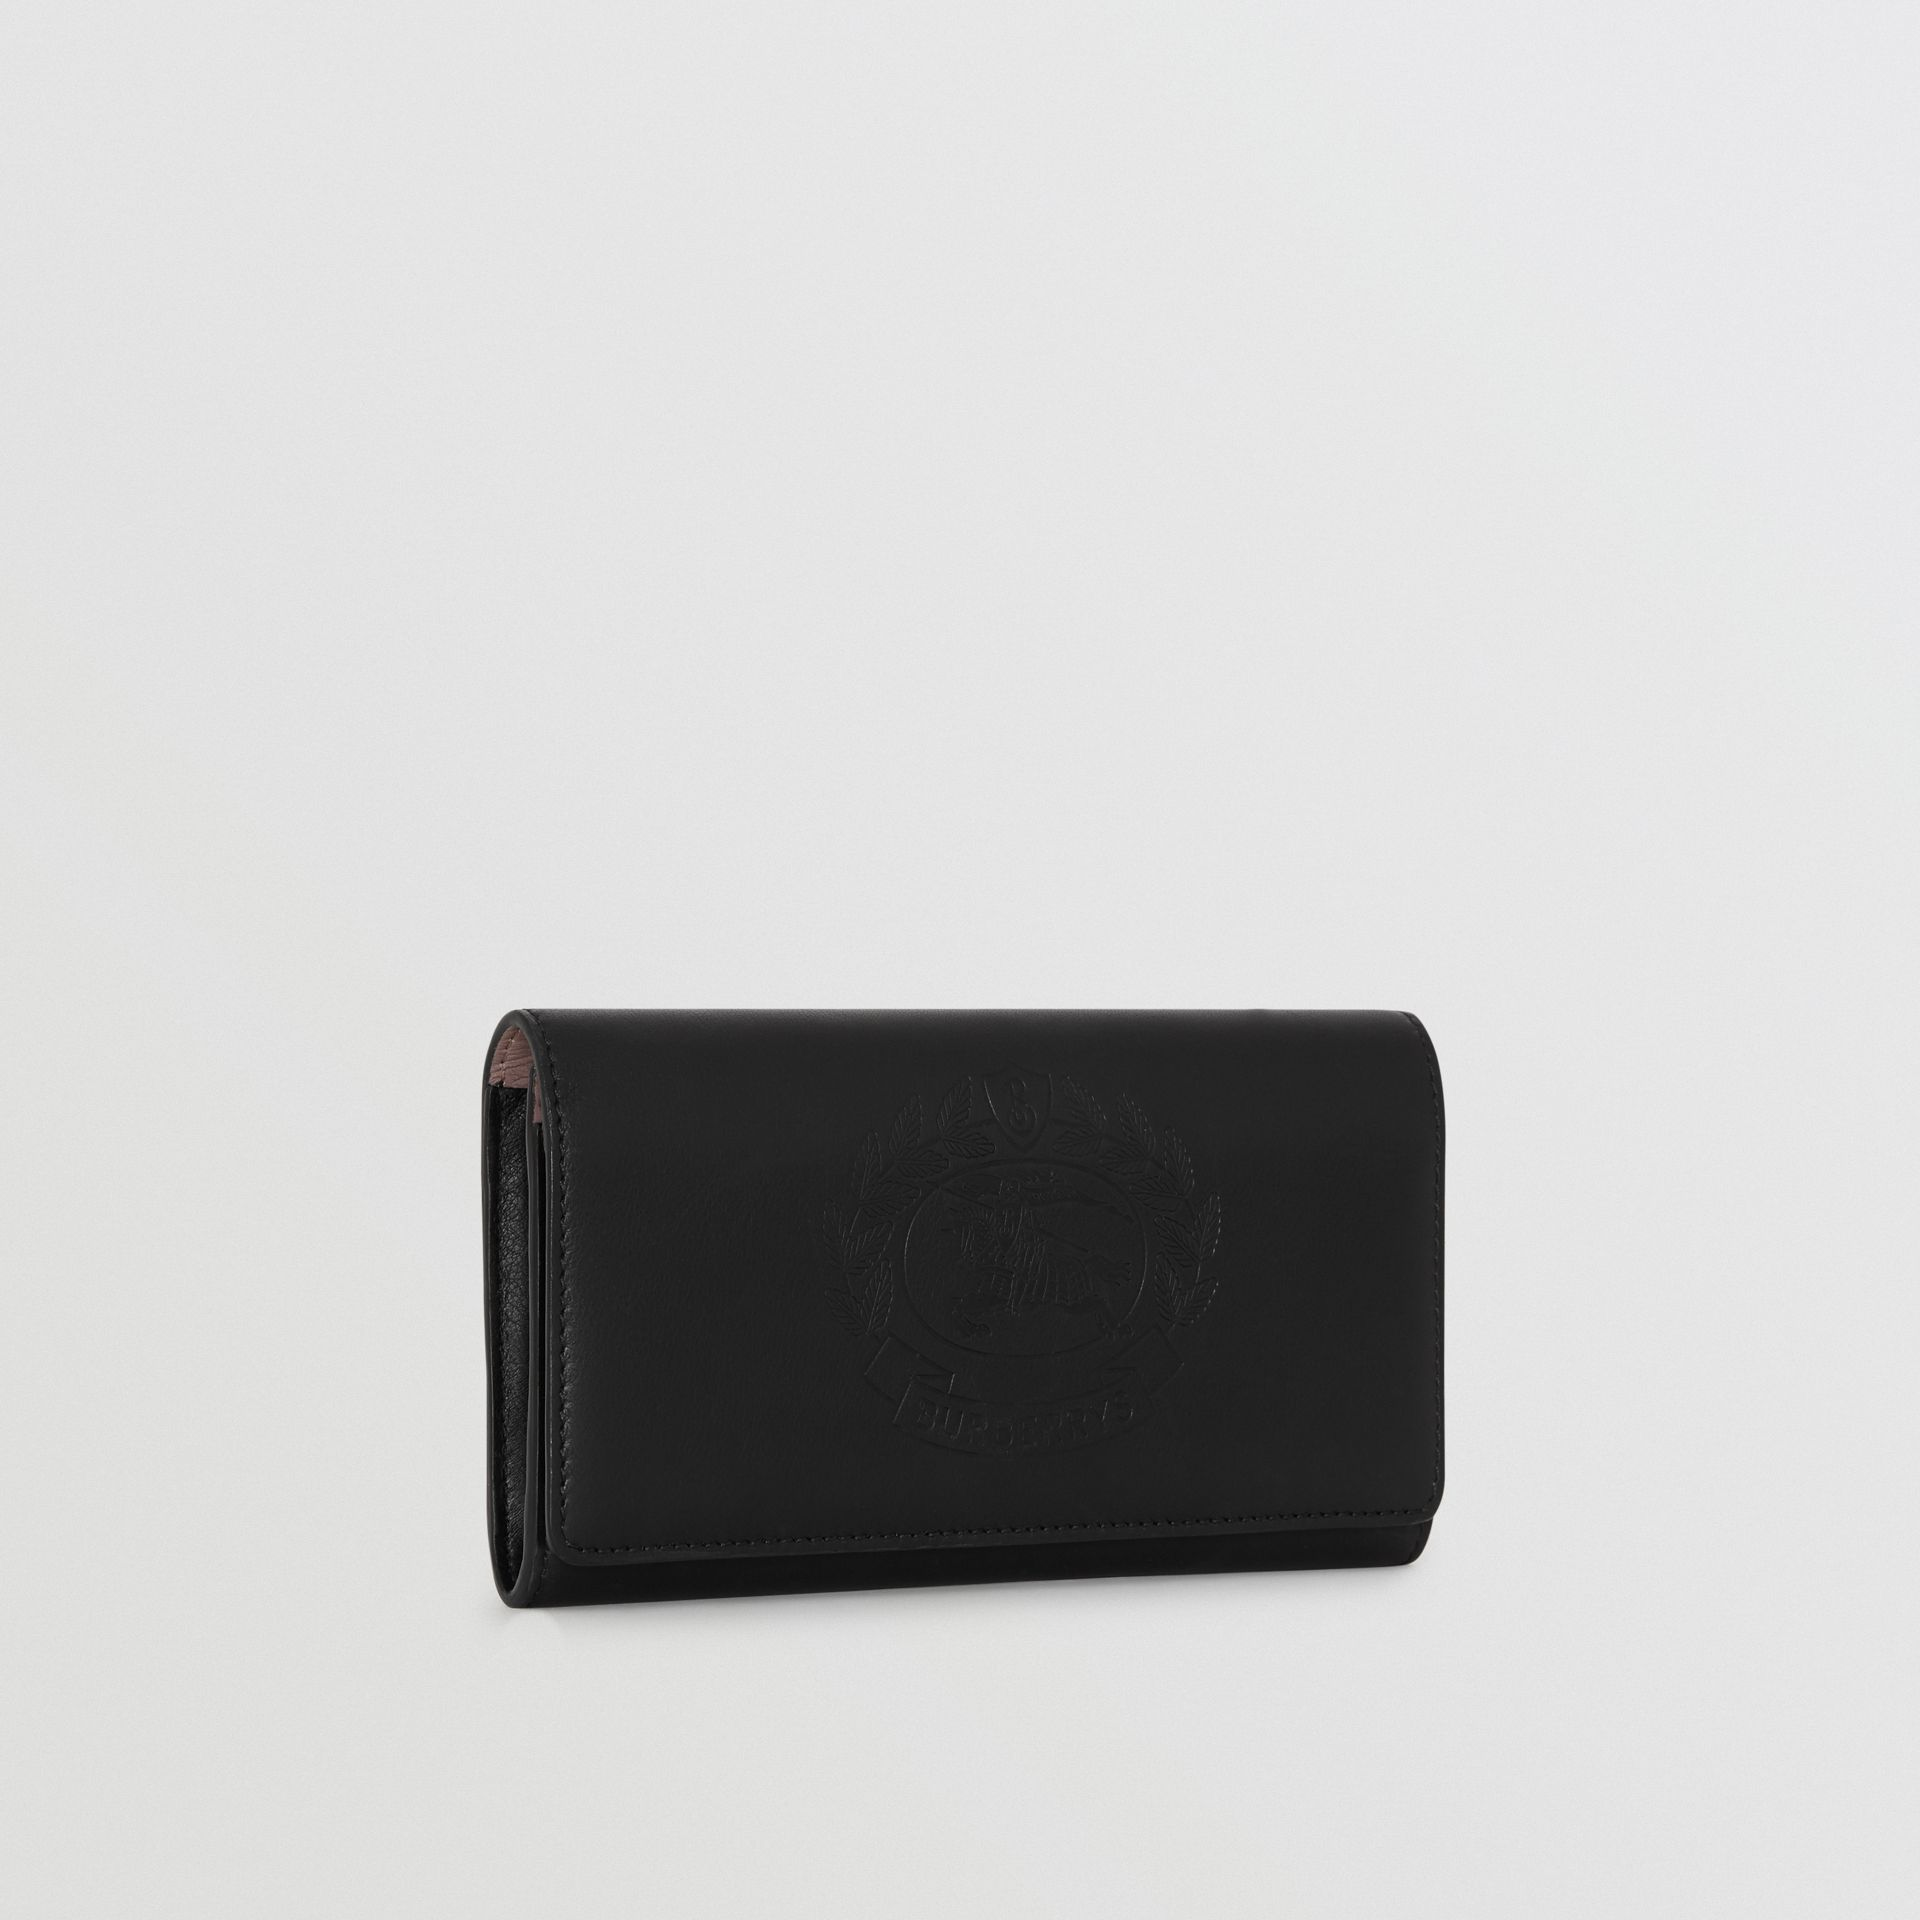 Embossed Crest Two-tone Leather Continental Wallet in Black - Women | Burberry - gallery image 2